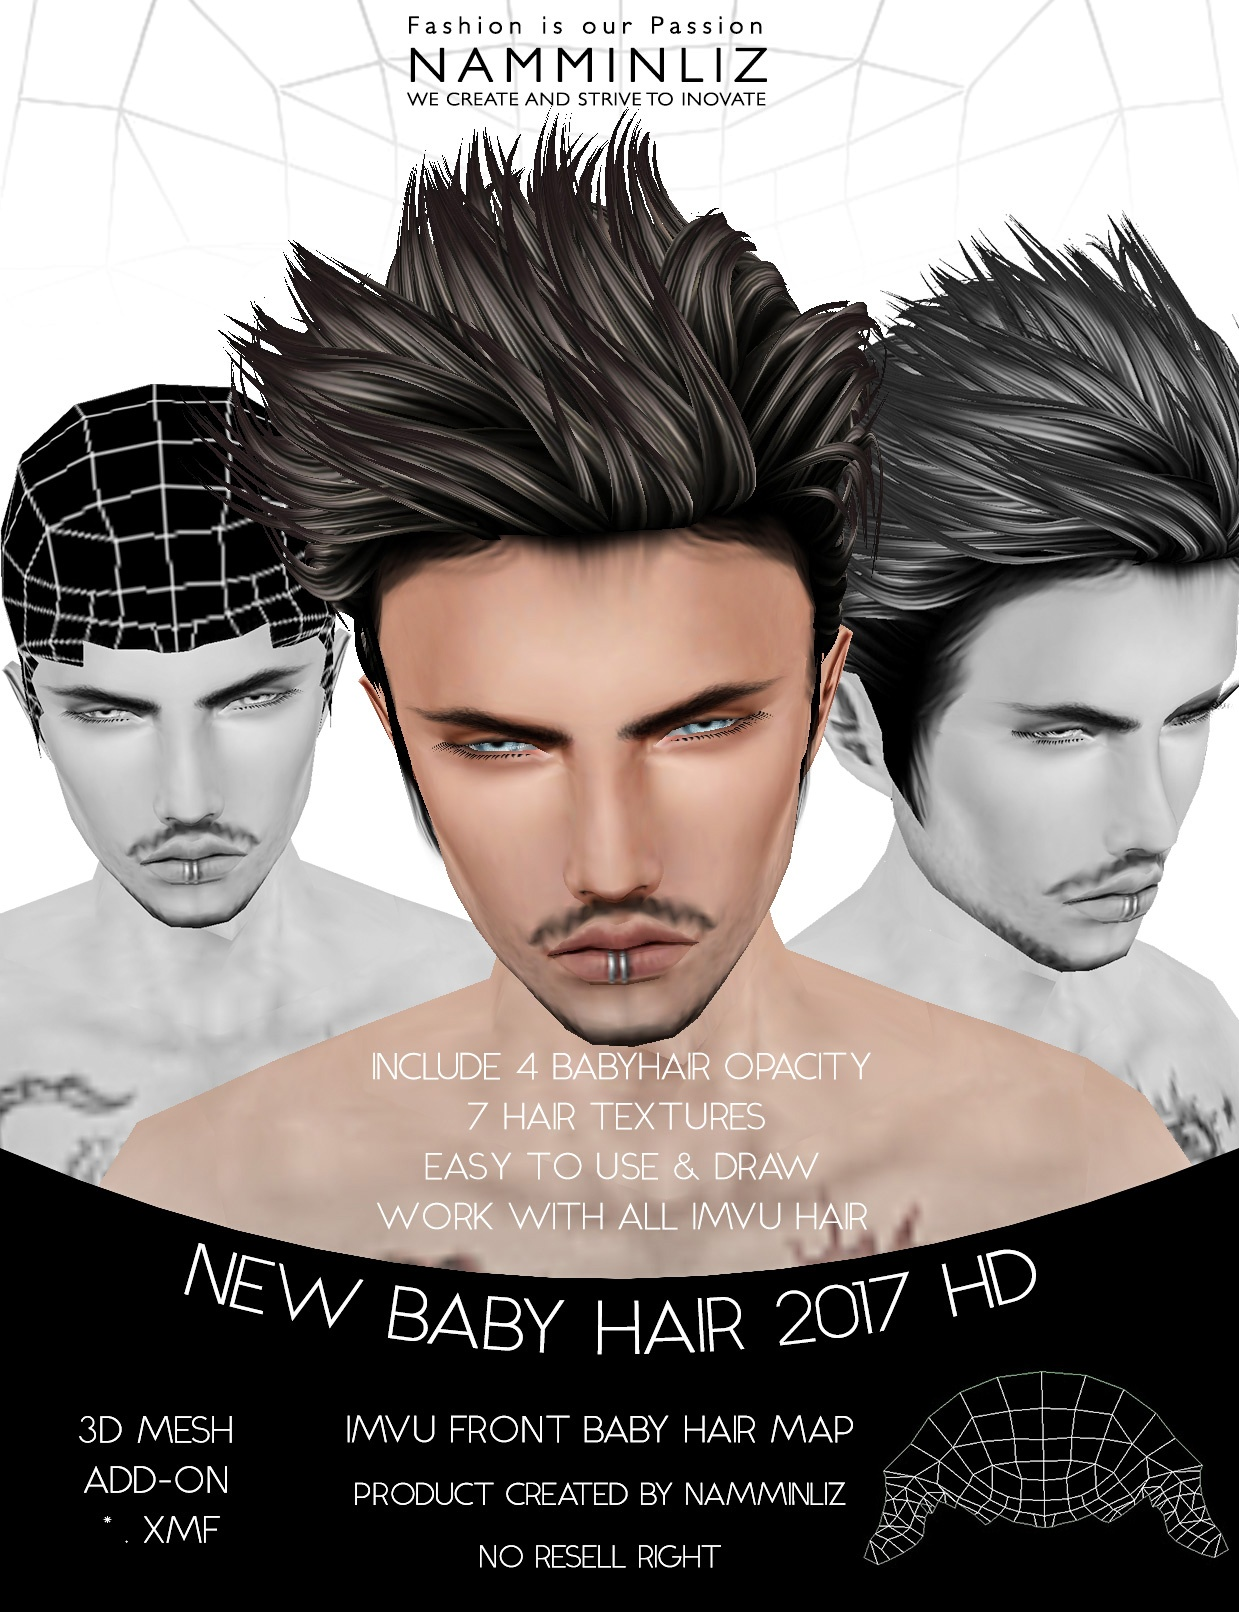 New Baby hair 2017 HD Front Male • 4 Baby hair Opacity • 7 Hair Textures